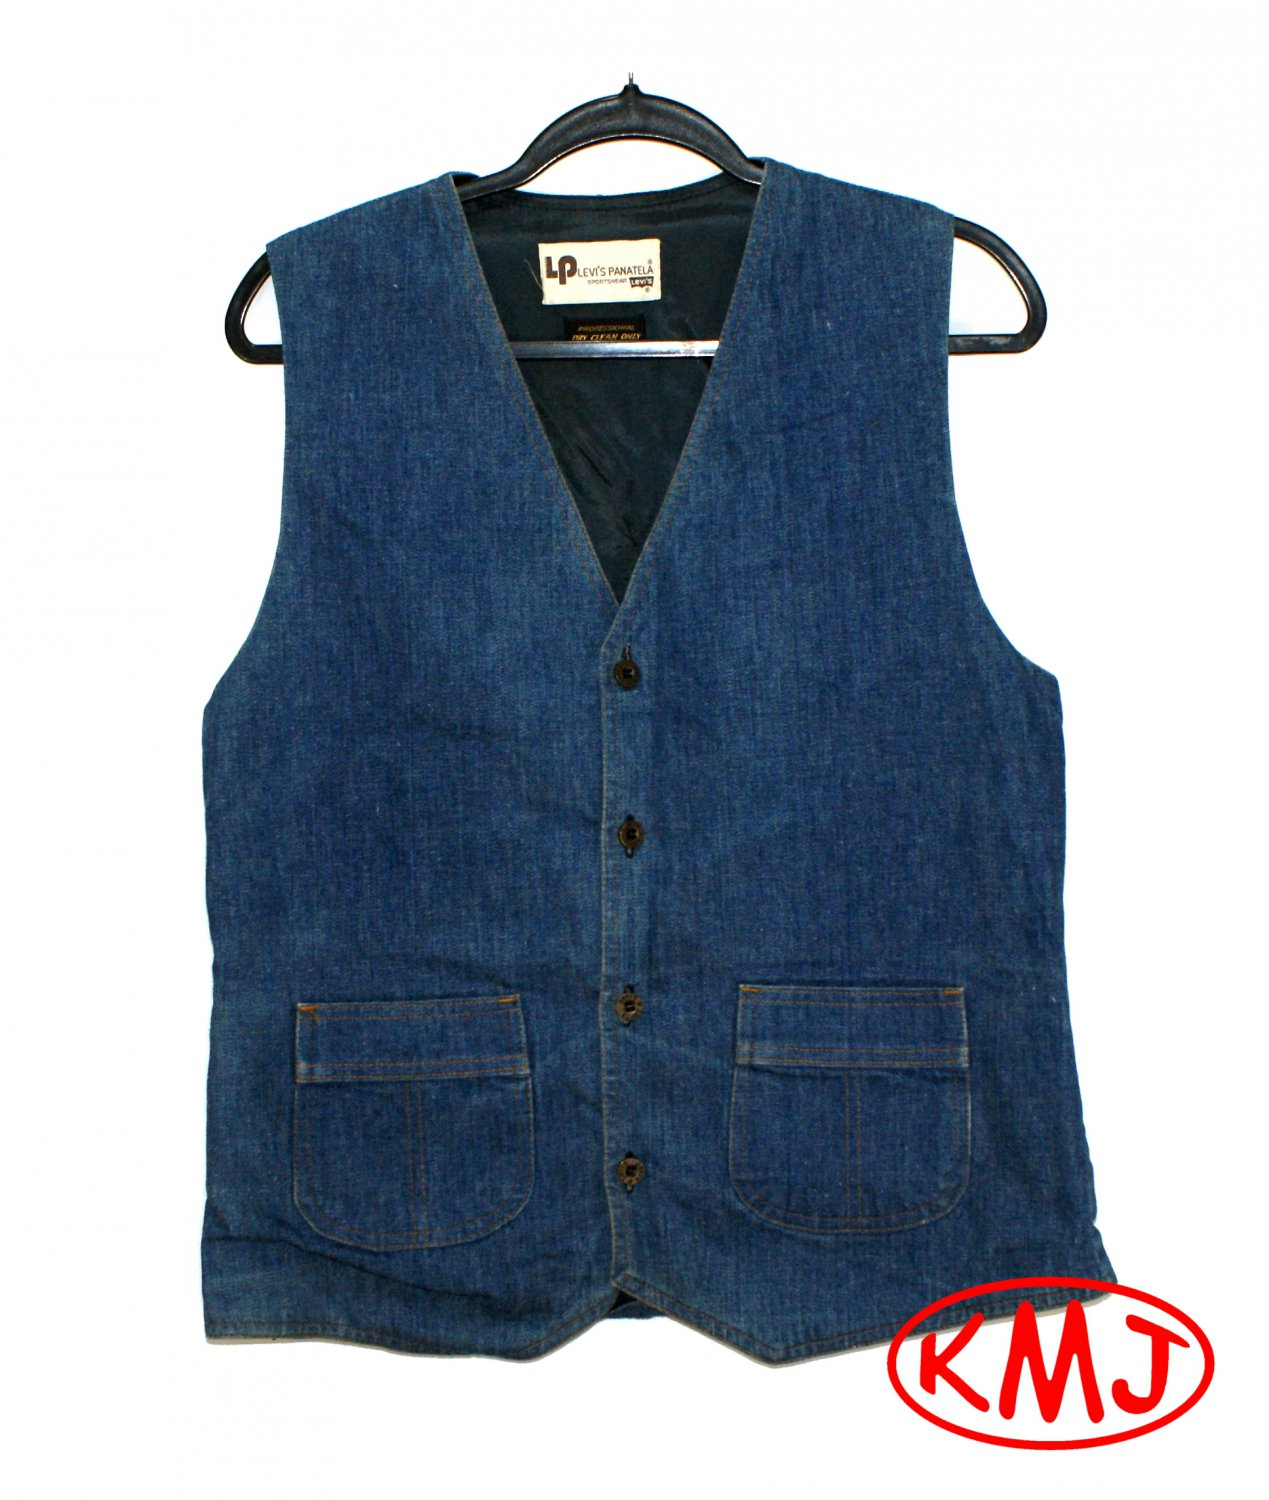 LEVI'S VINTAGE 1970s PANATELA SPORTSWEAR MEDIUM BLUE DENIM LINED VEST in size M (Medium) MADE IN USA